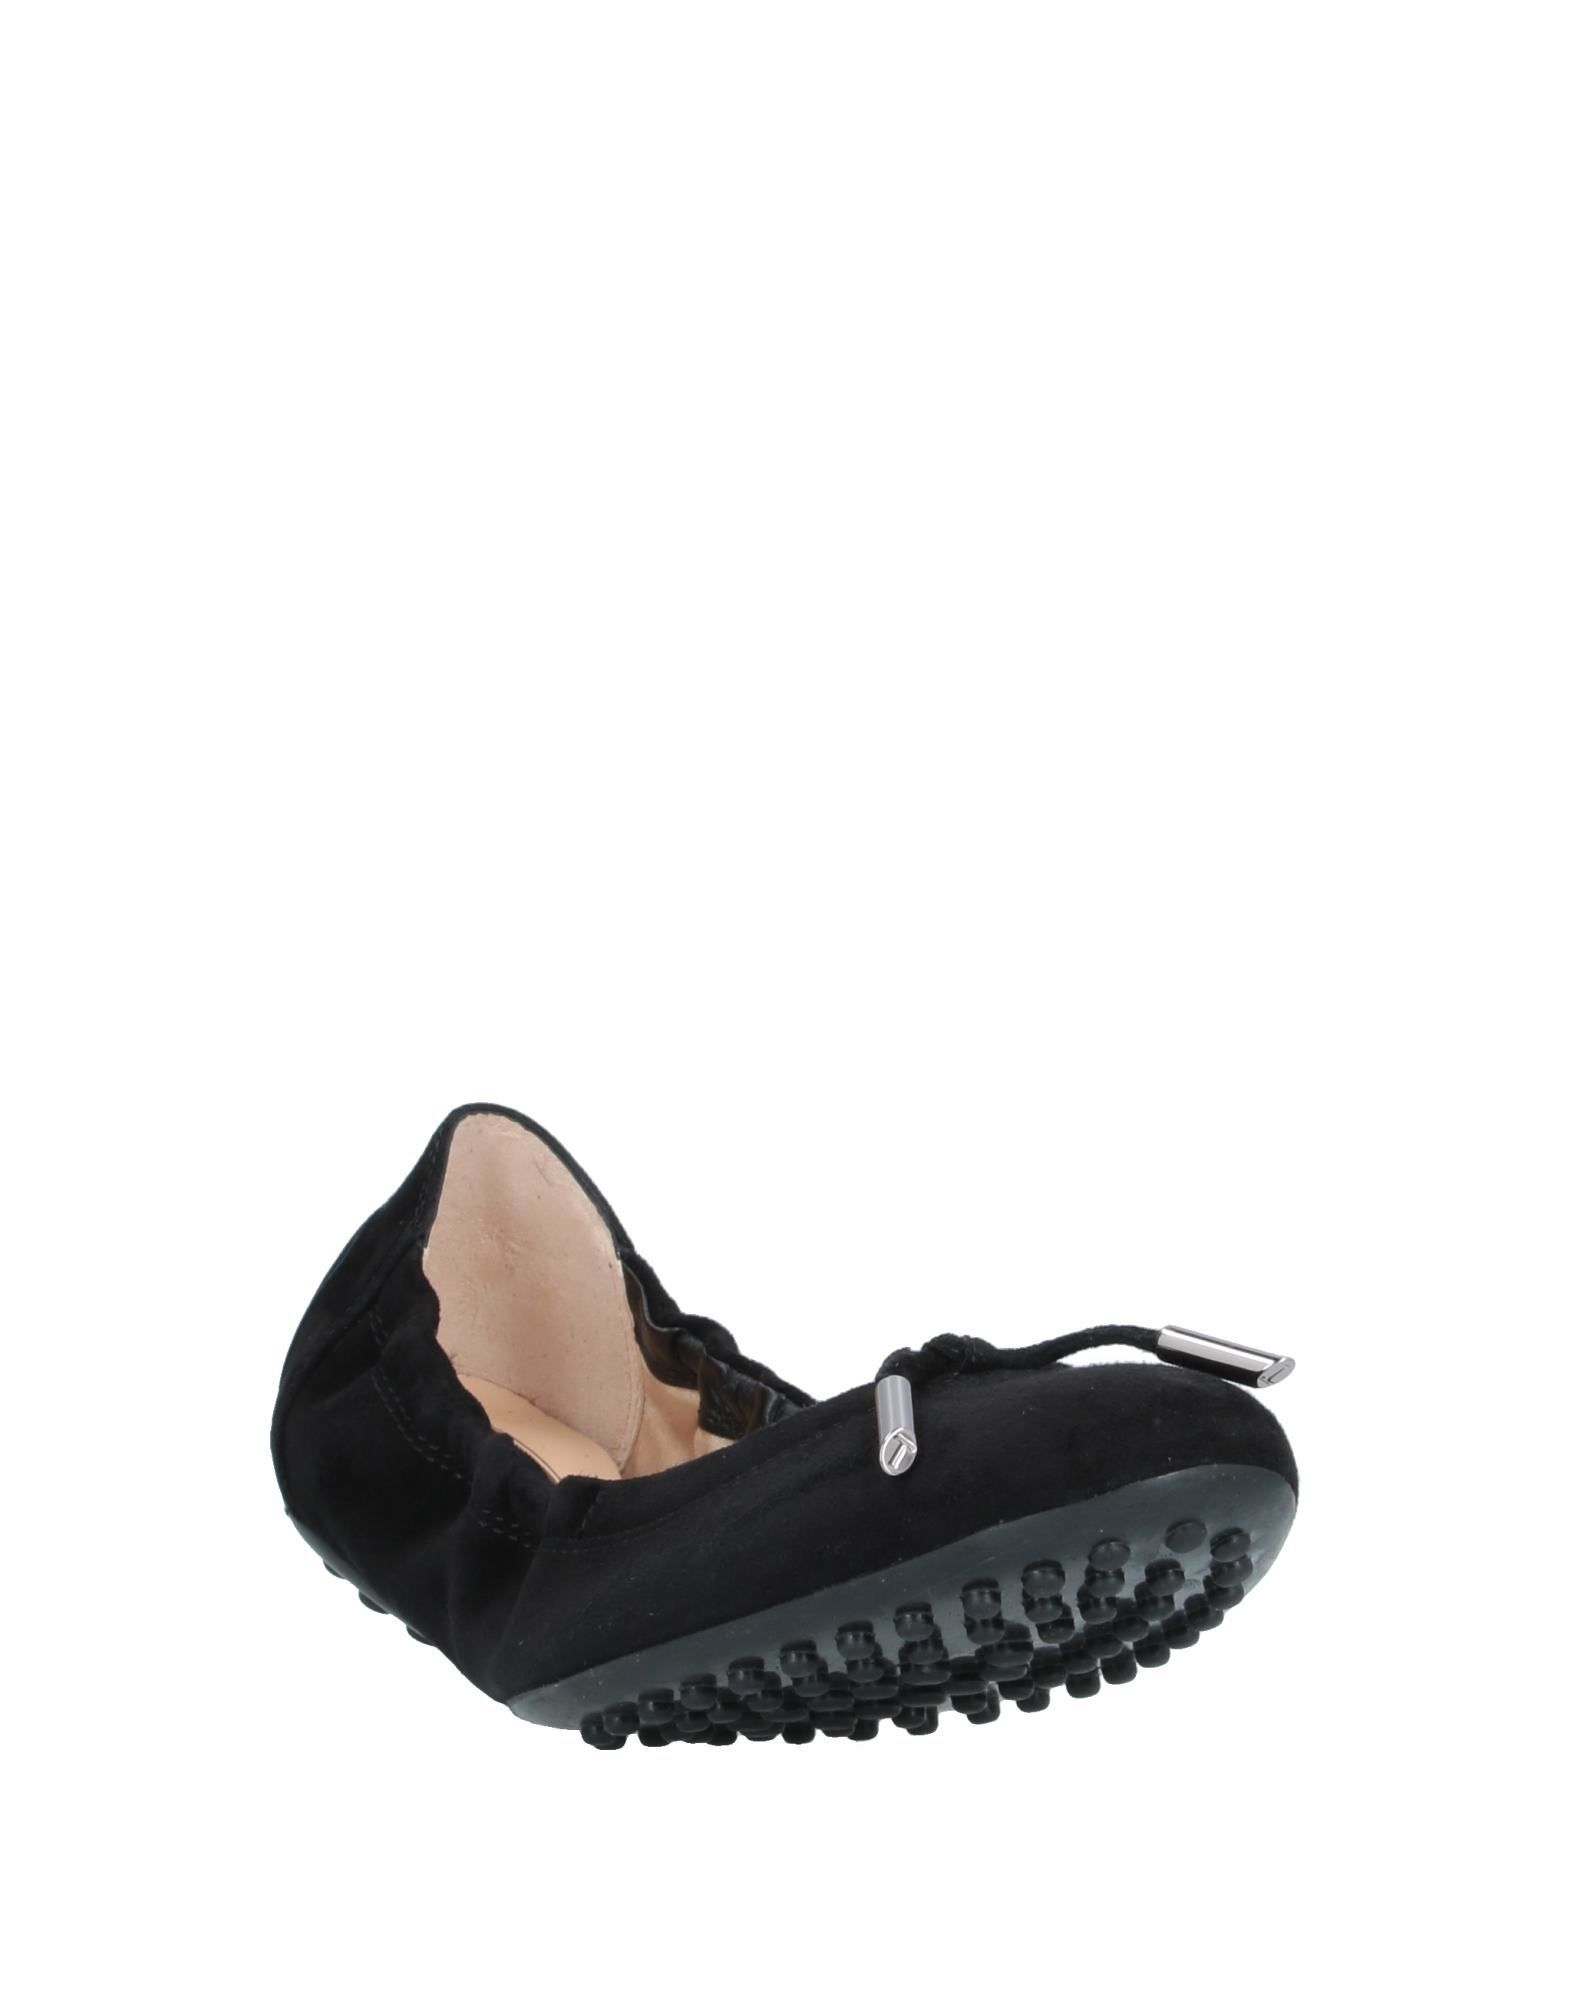 Tod's Black Leather Ballet Flats